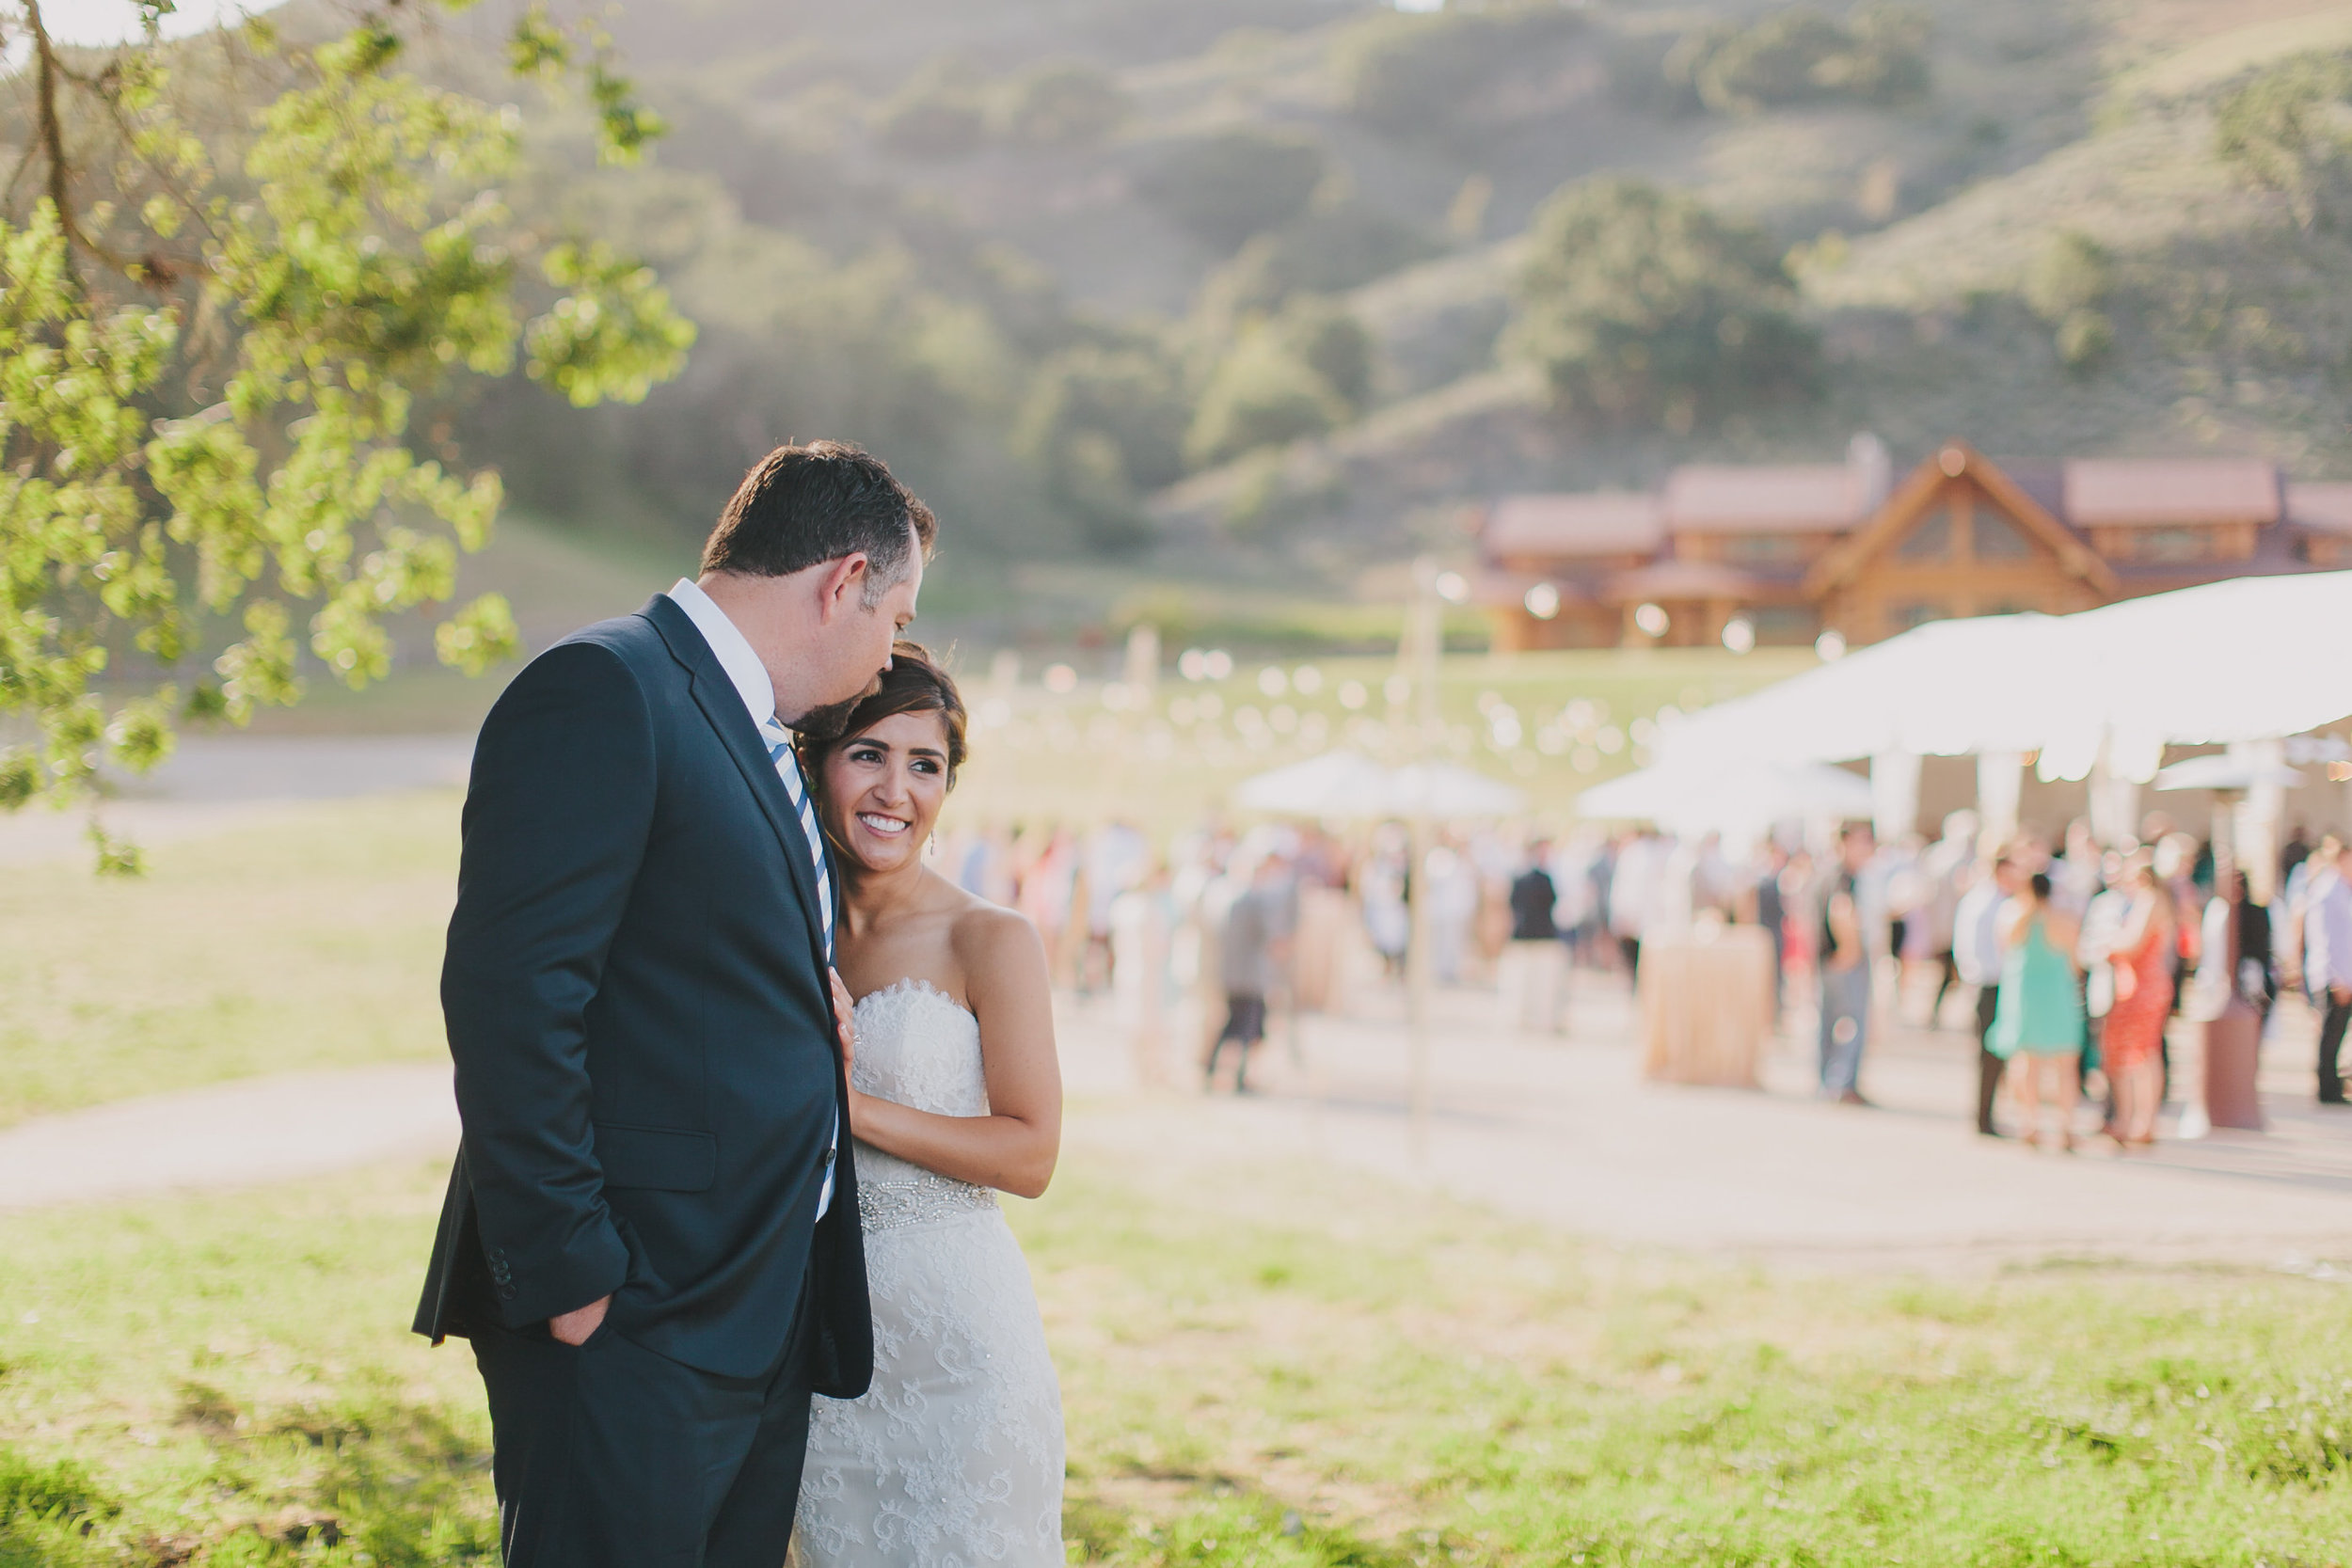 Carson Bianca Wedding by Jake and Necia Photography-06 brideandgroom-0077.jpg